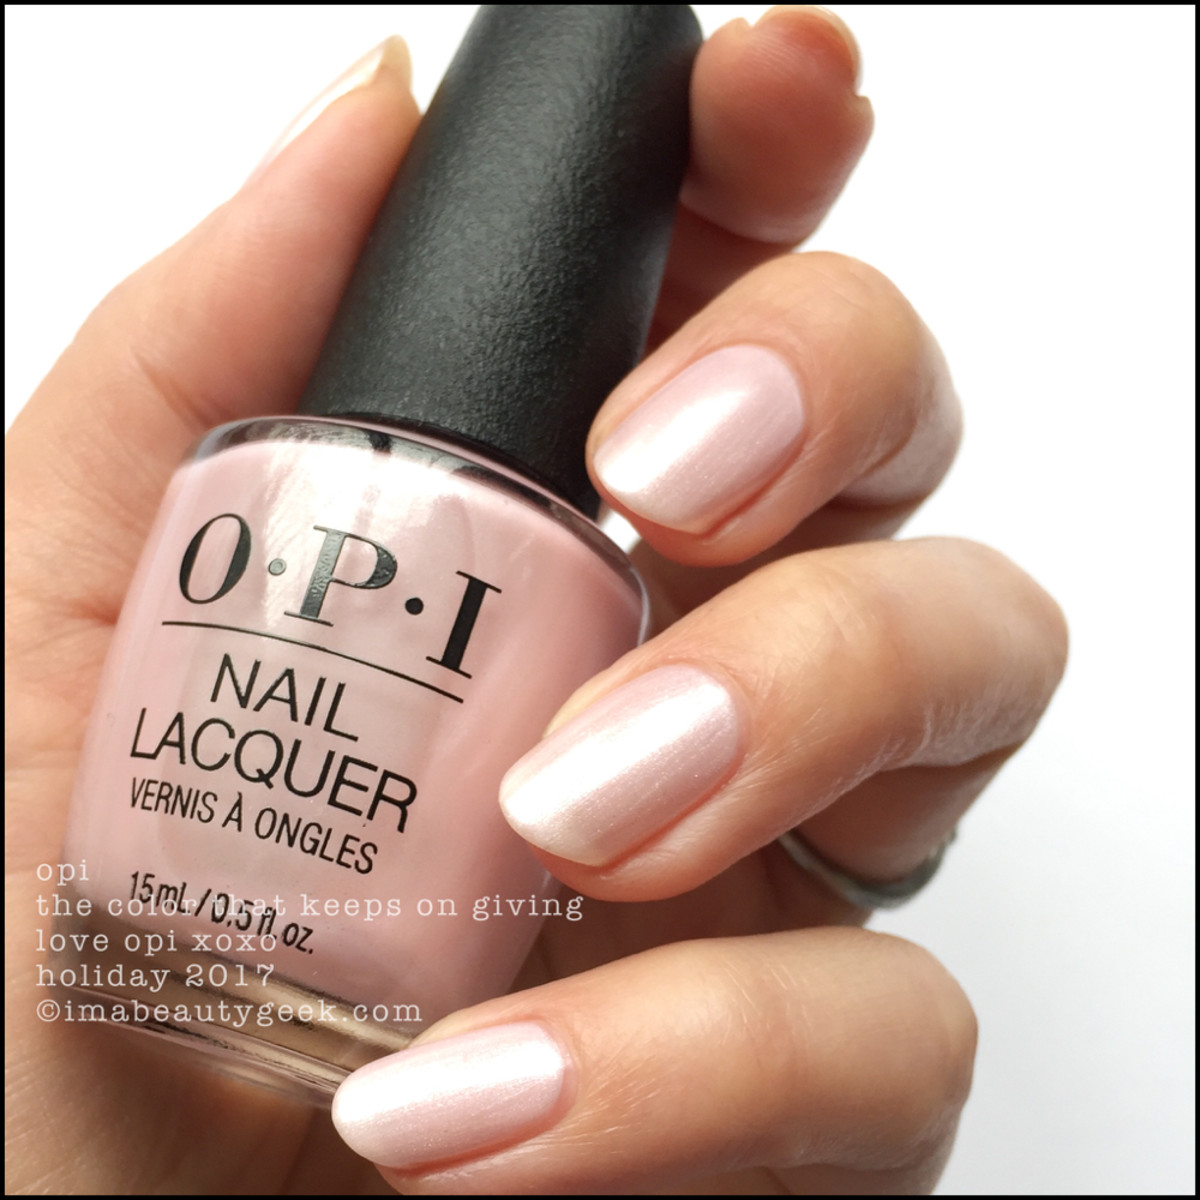 OPI The Color That Keeps on Giving - Love OPI XOXO Holiday 2017 Collection